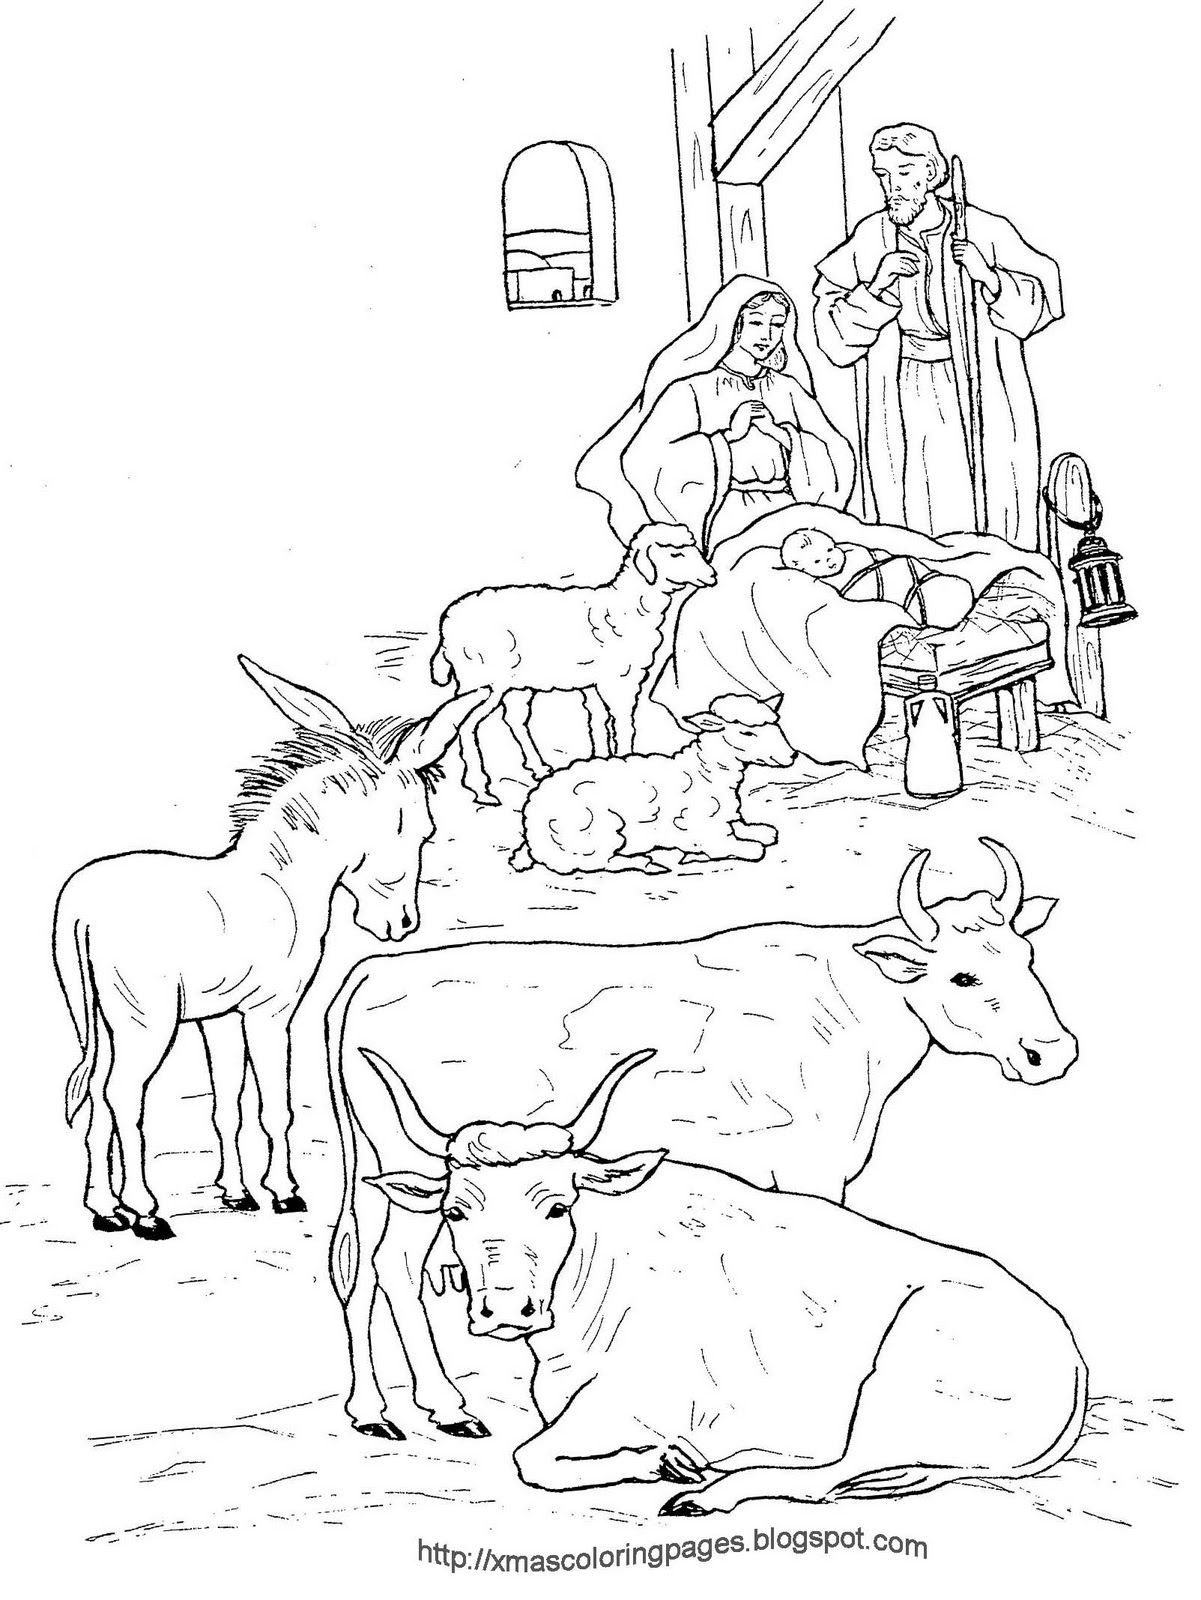 baby jesus in manger coloring page baby jesus coloring page nativity nativity coloring baby coloring page jesus manger in